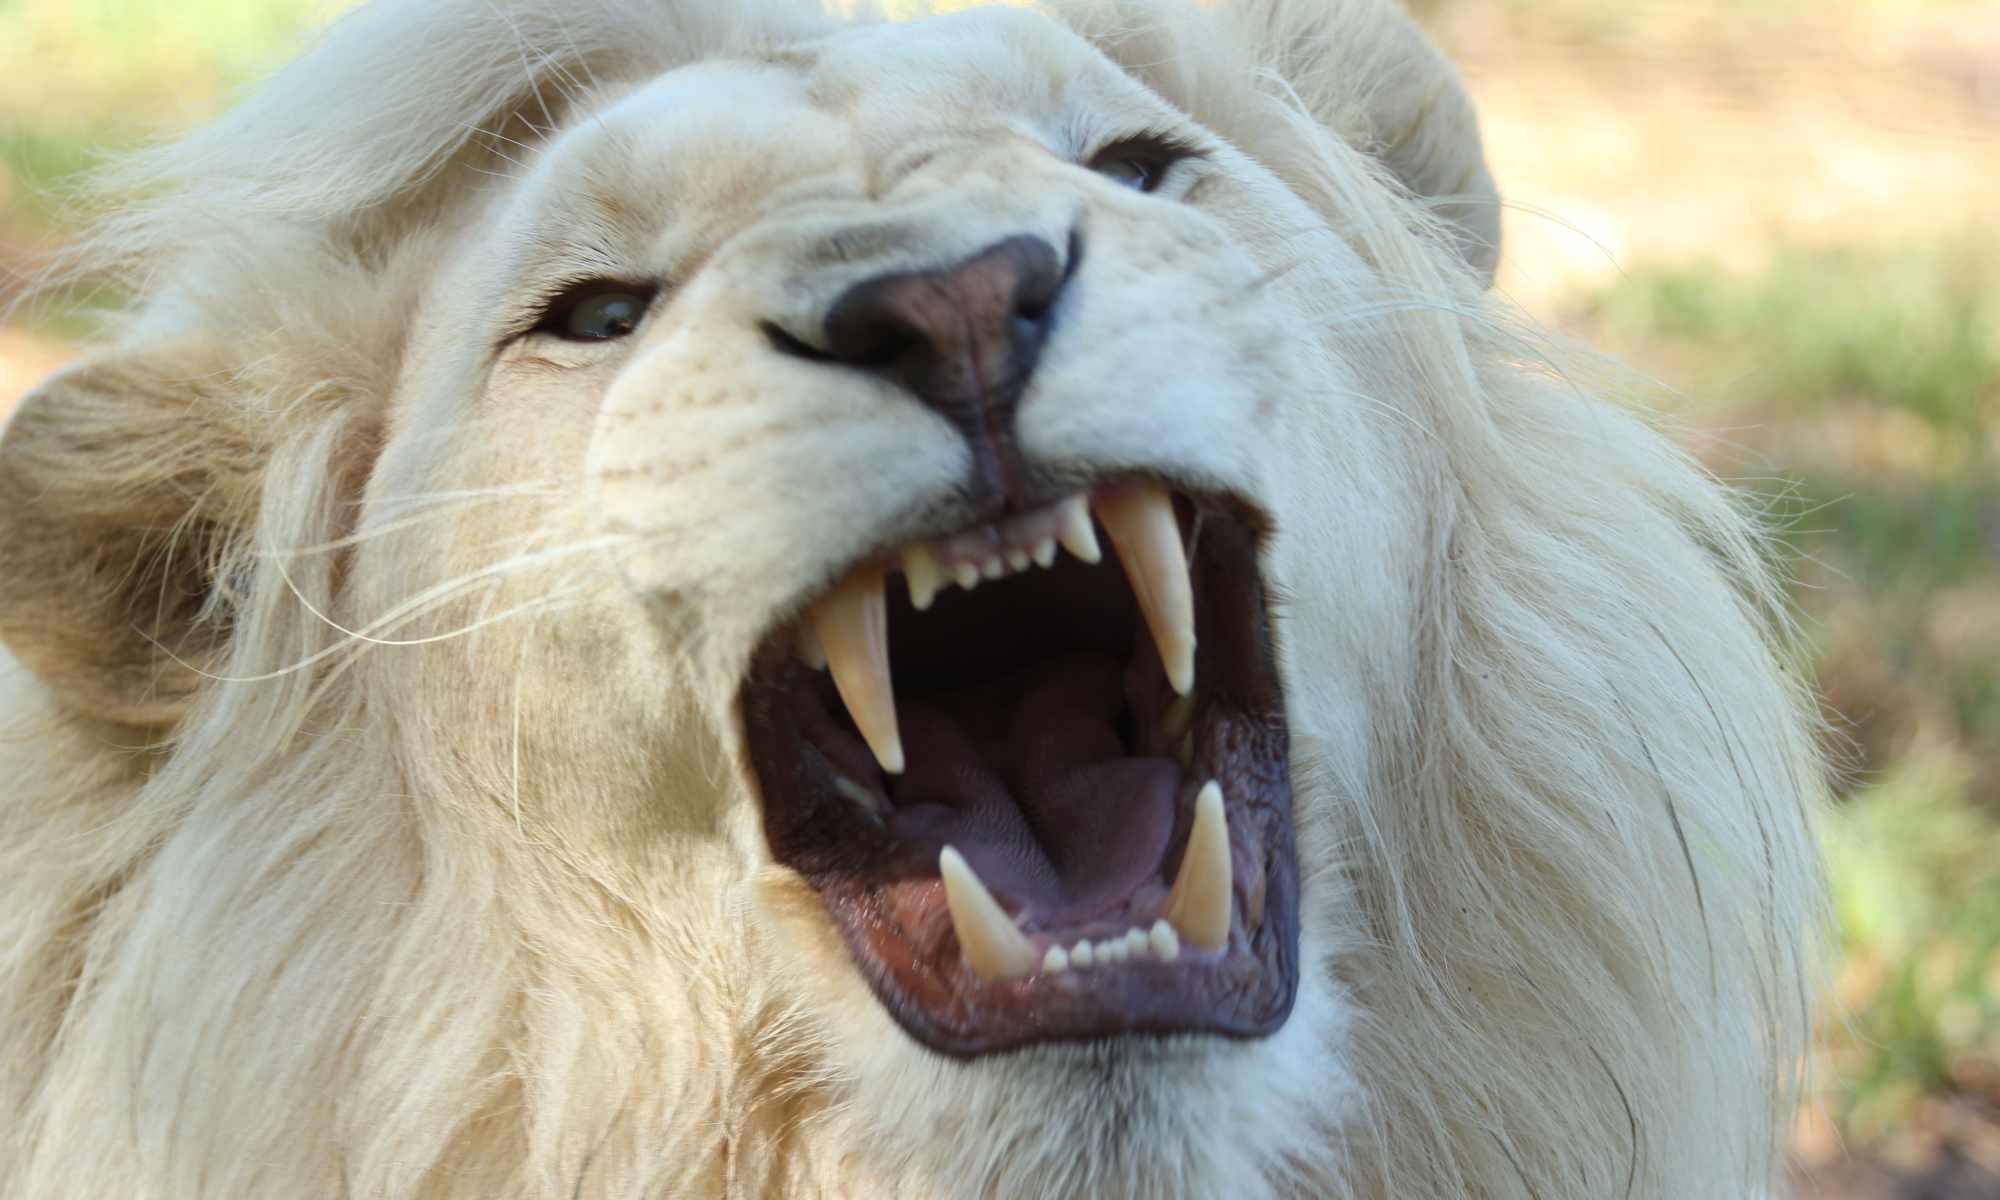 A white lion from South Africa growls menacingly